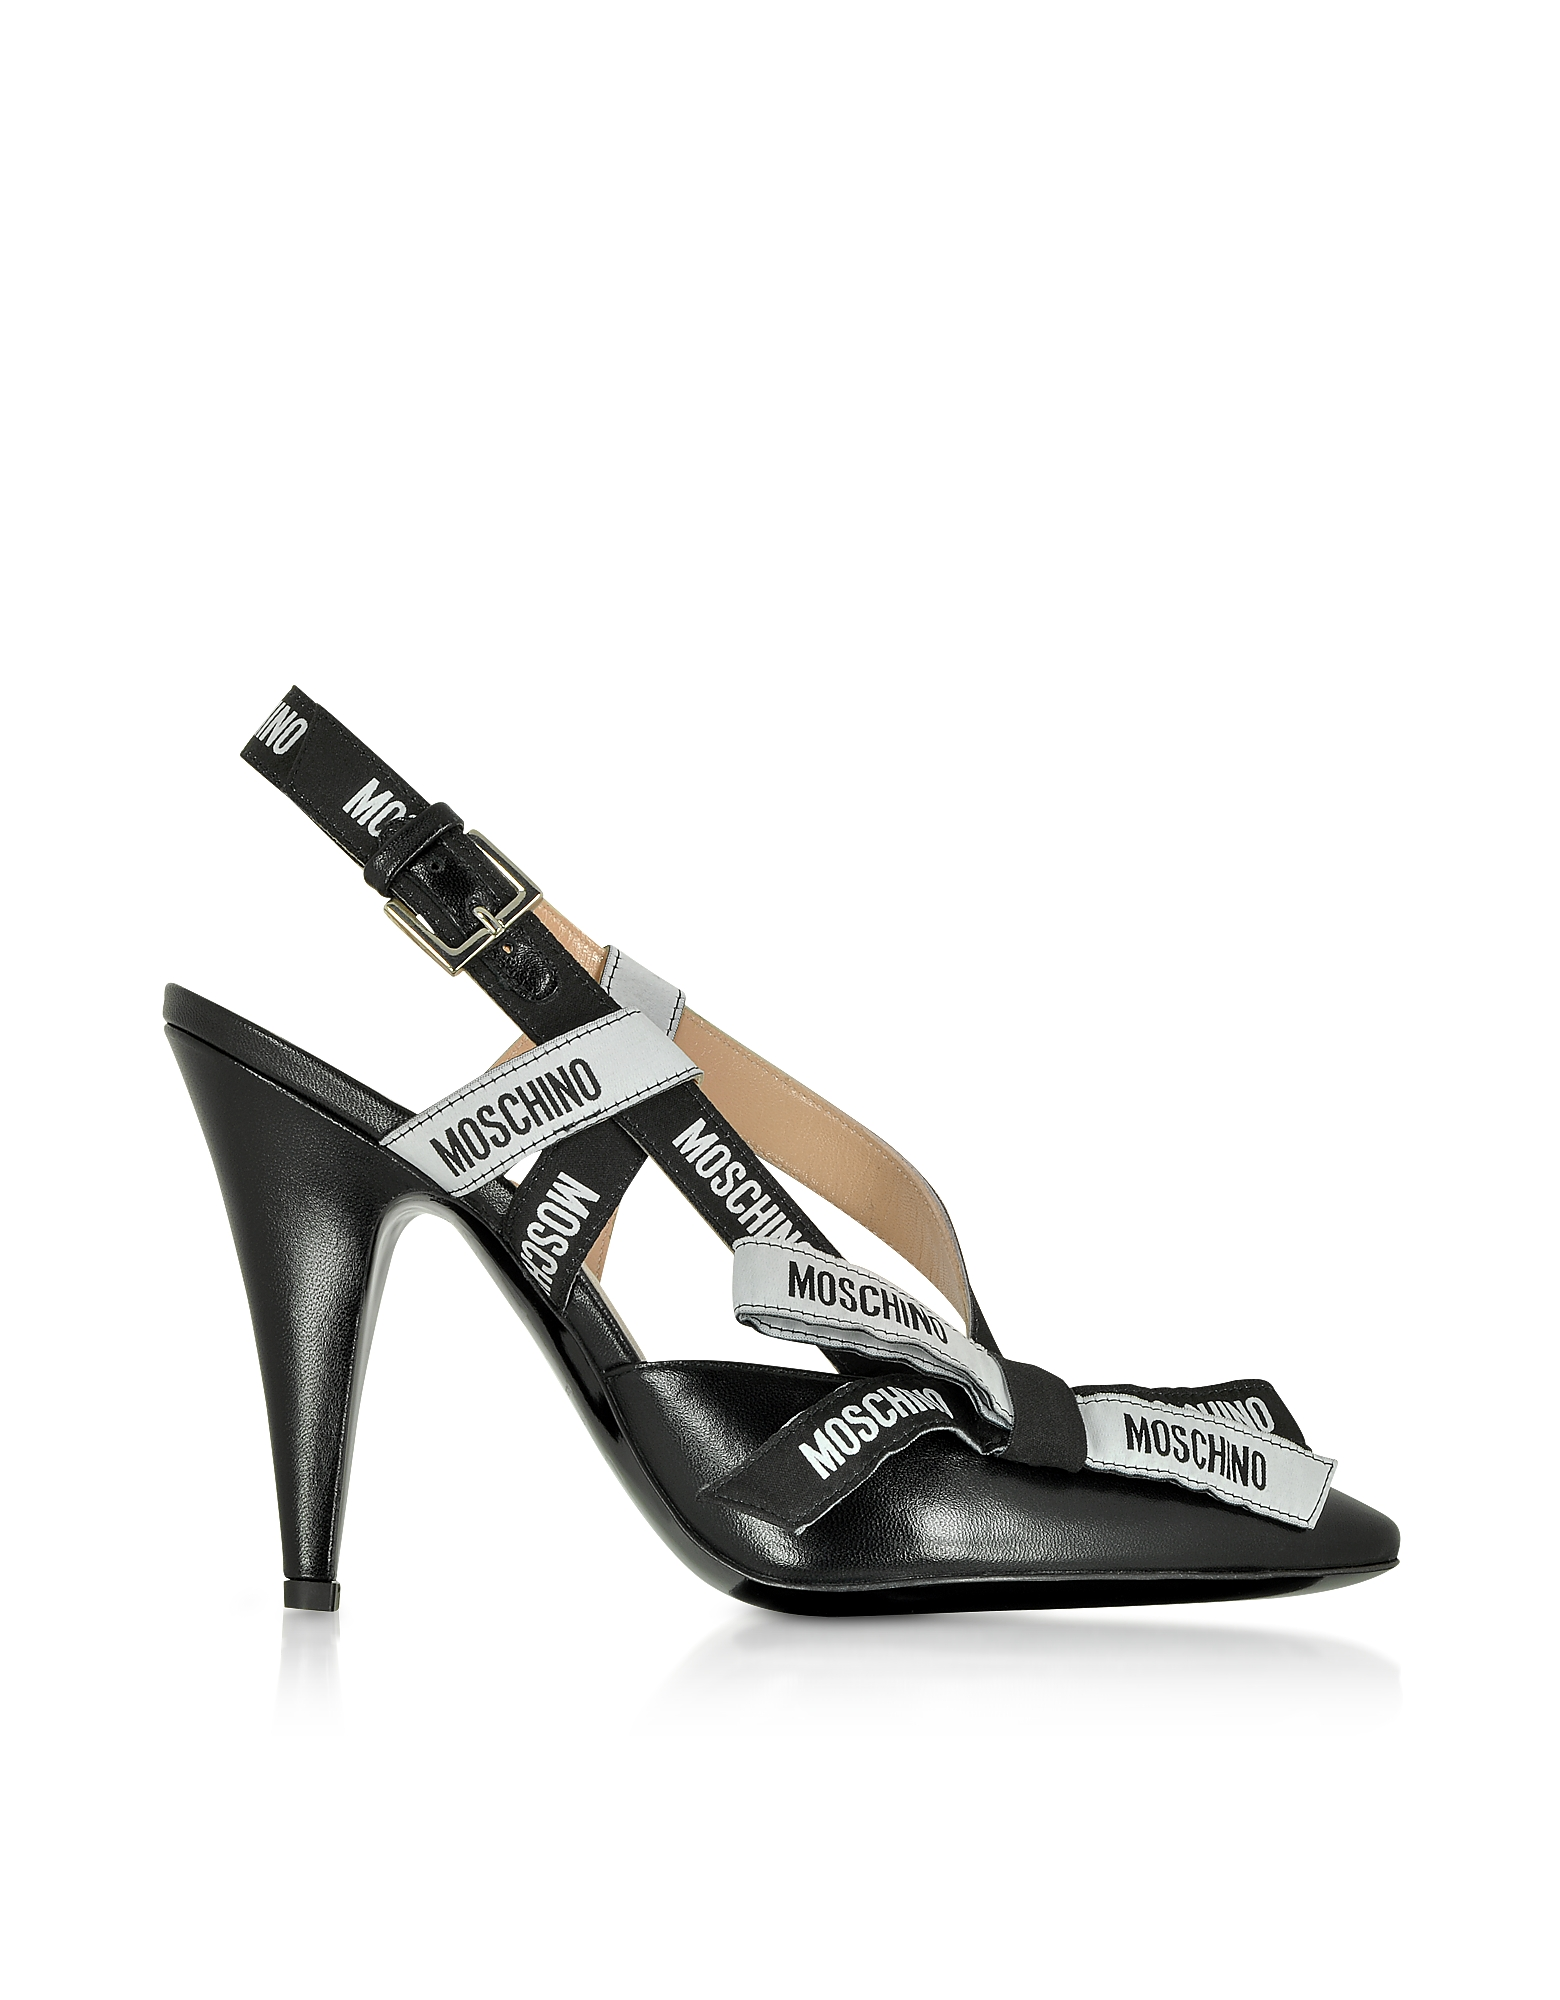 Moschino Shoes, Black Leather Signature Pumps